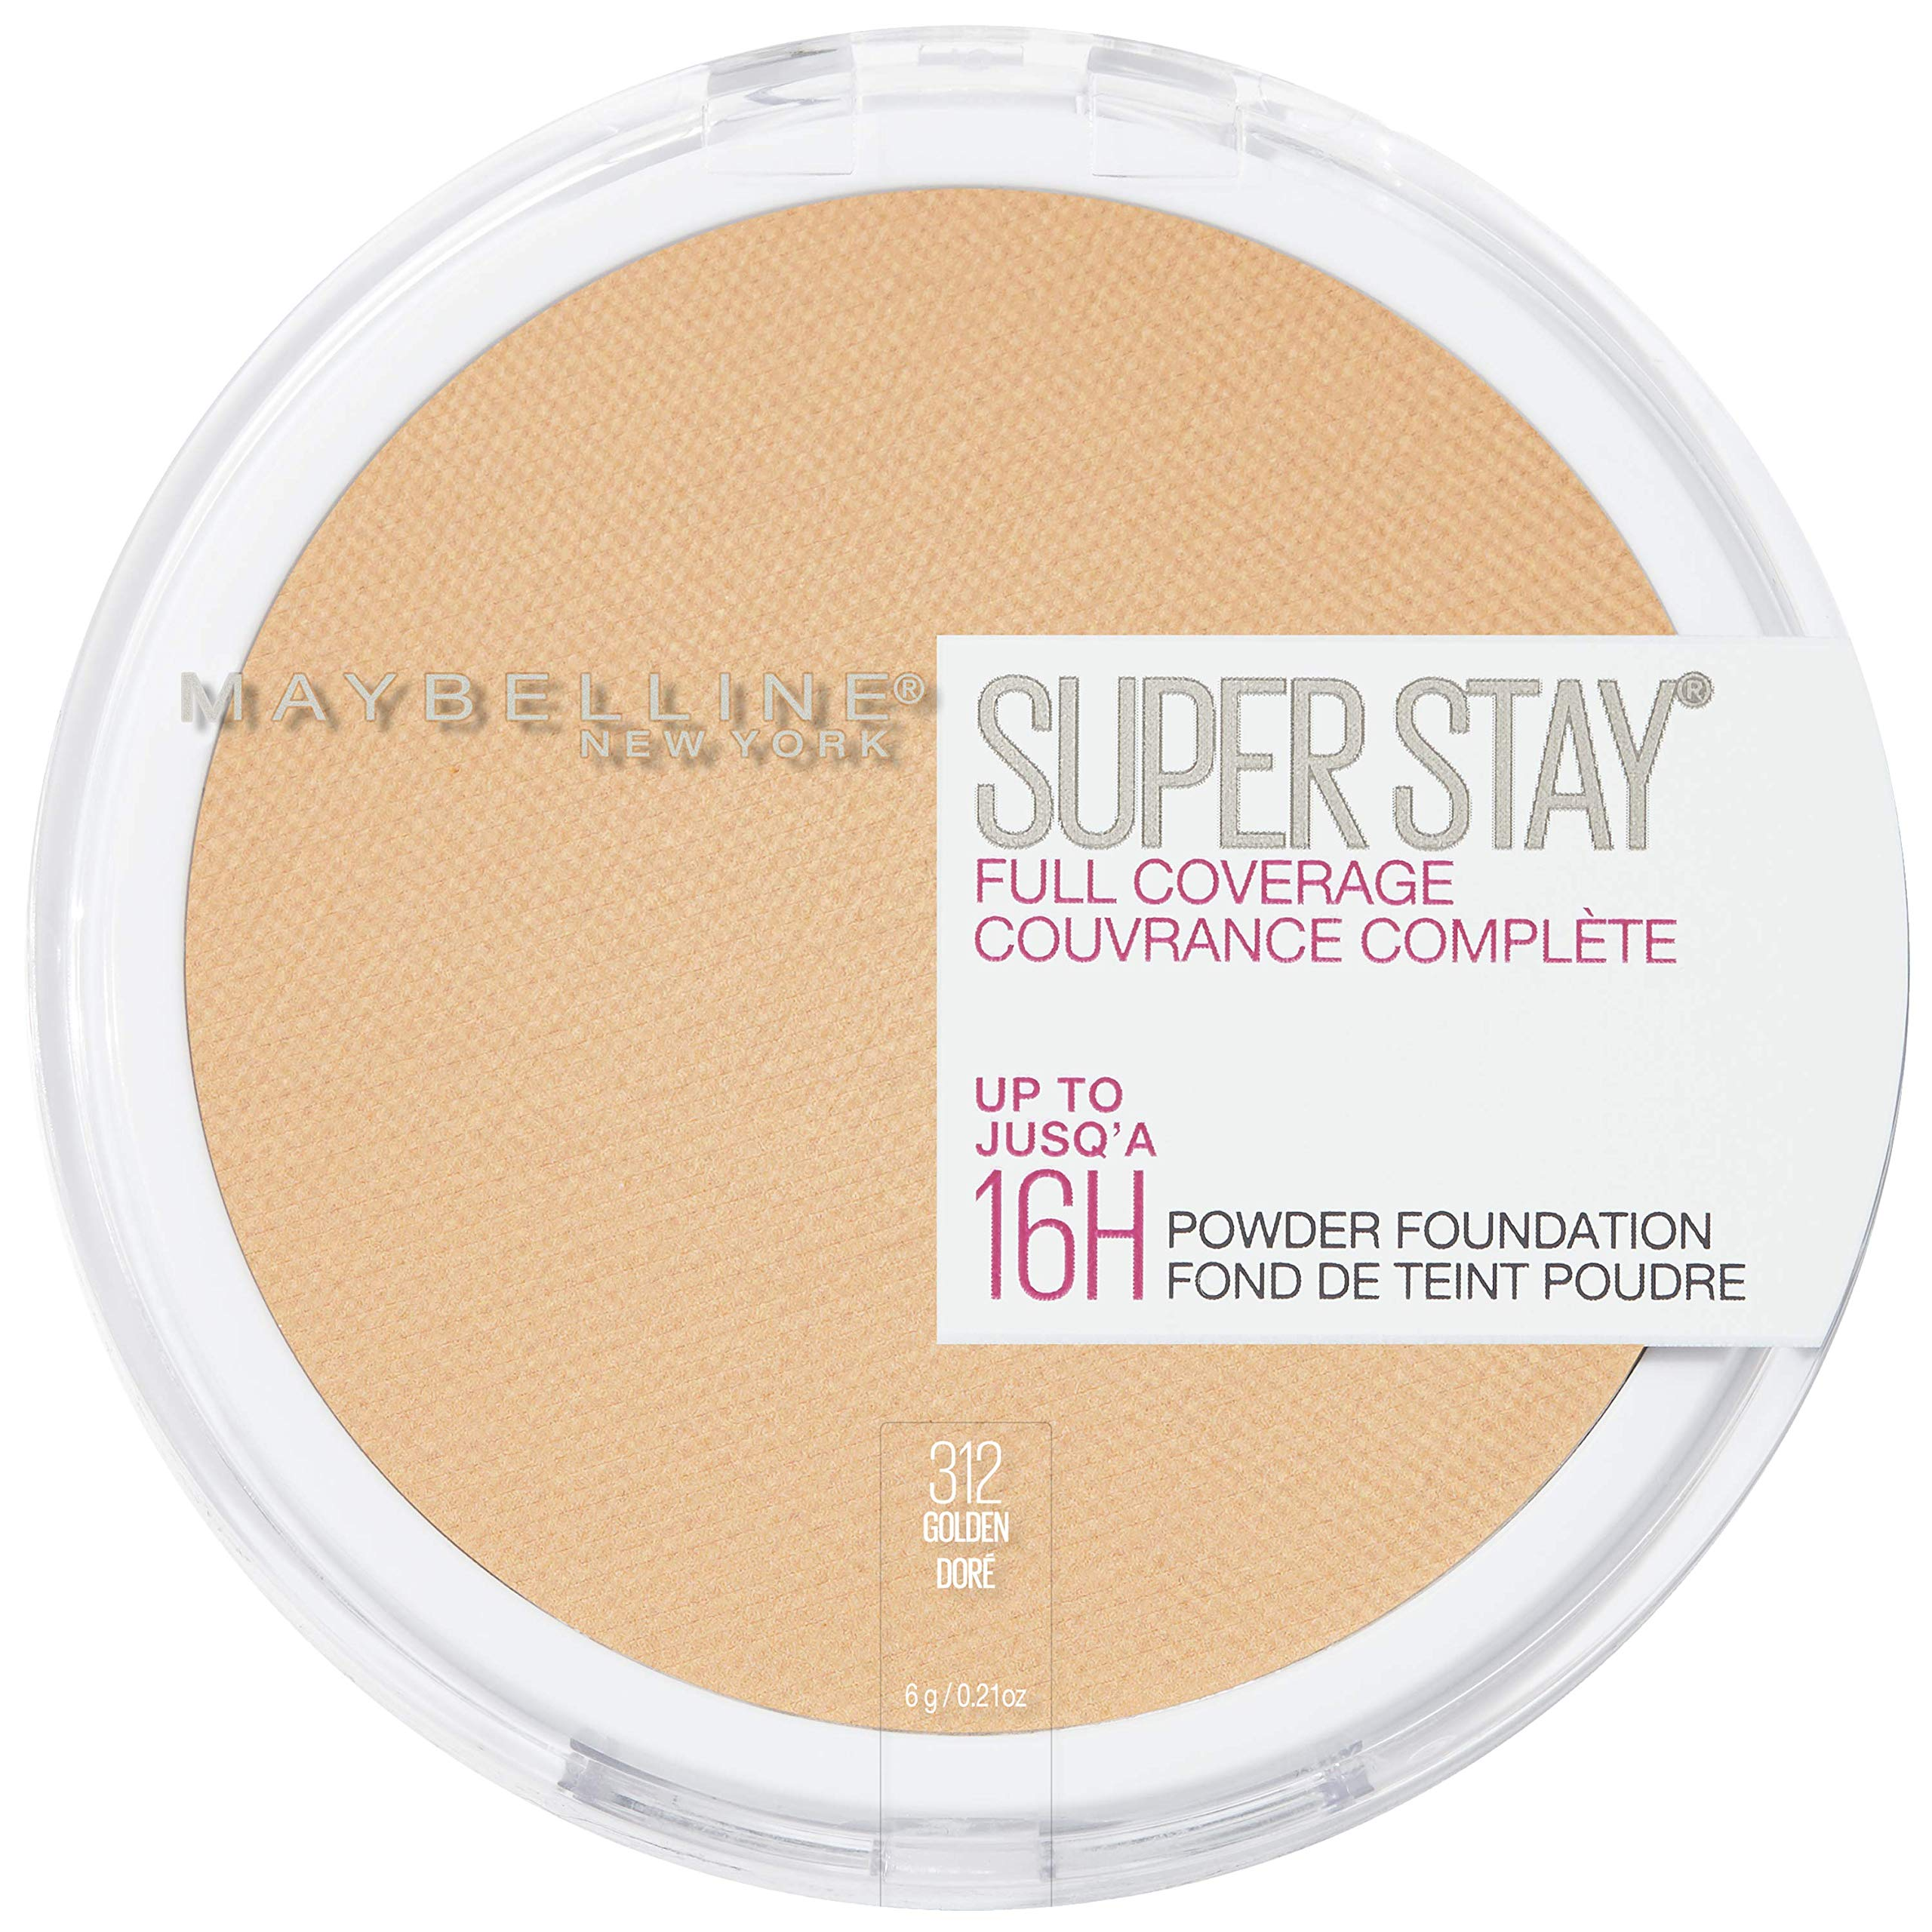 Maybelline New York Super Stay Full Coverage Powder Foundation Makeup, 312 Golden, 1 Count